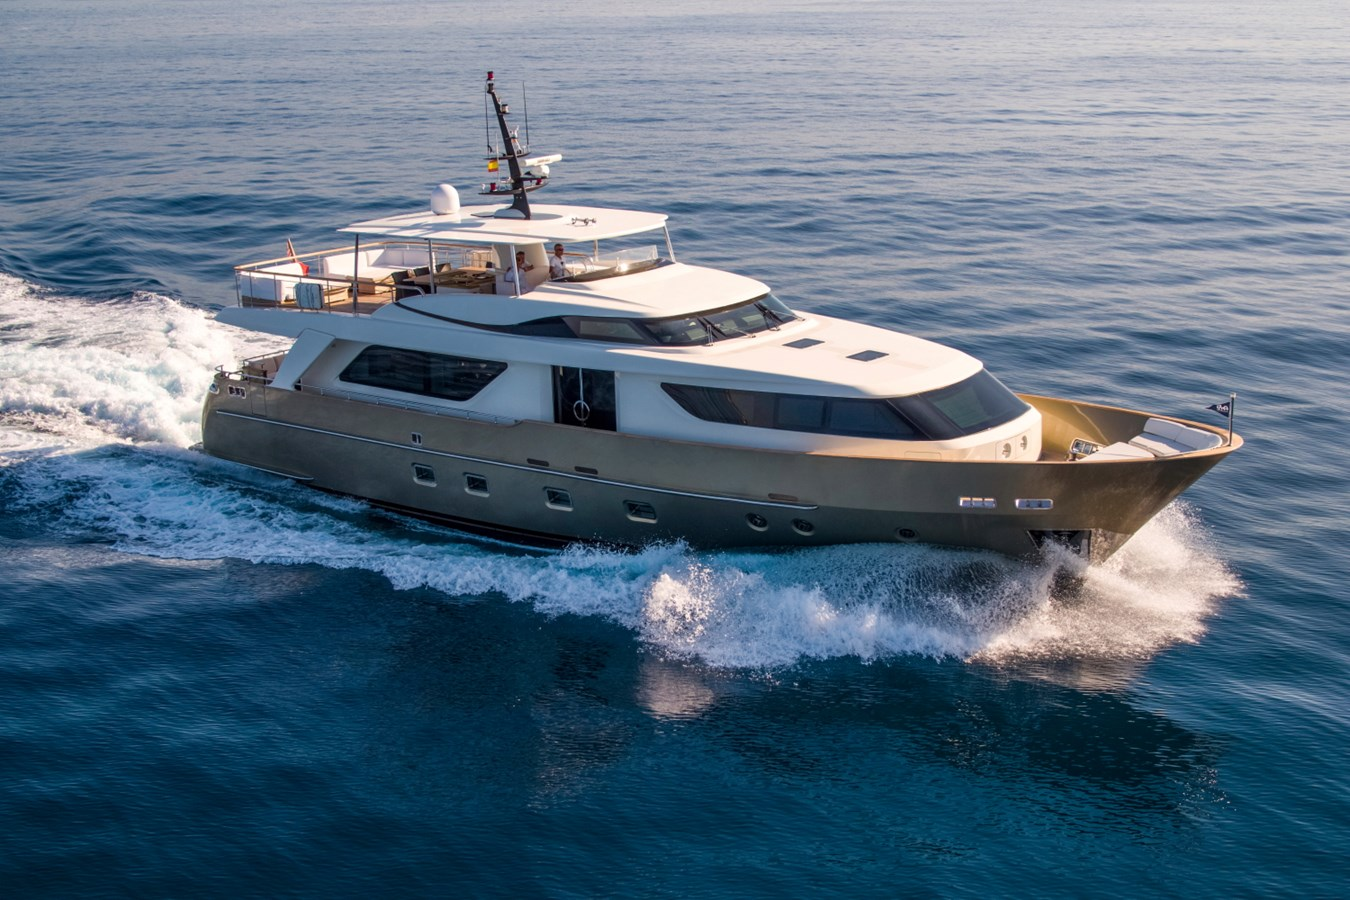 SL 92DS Underway 2010 SANLORENZO 92 SD Motor Yacht 2602763